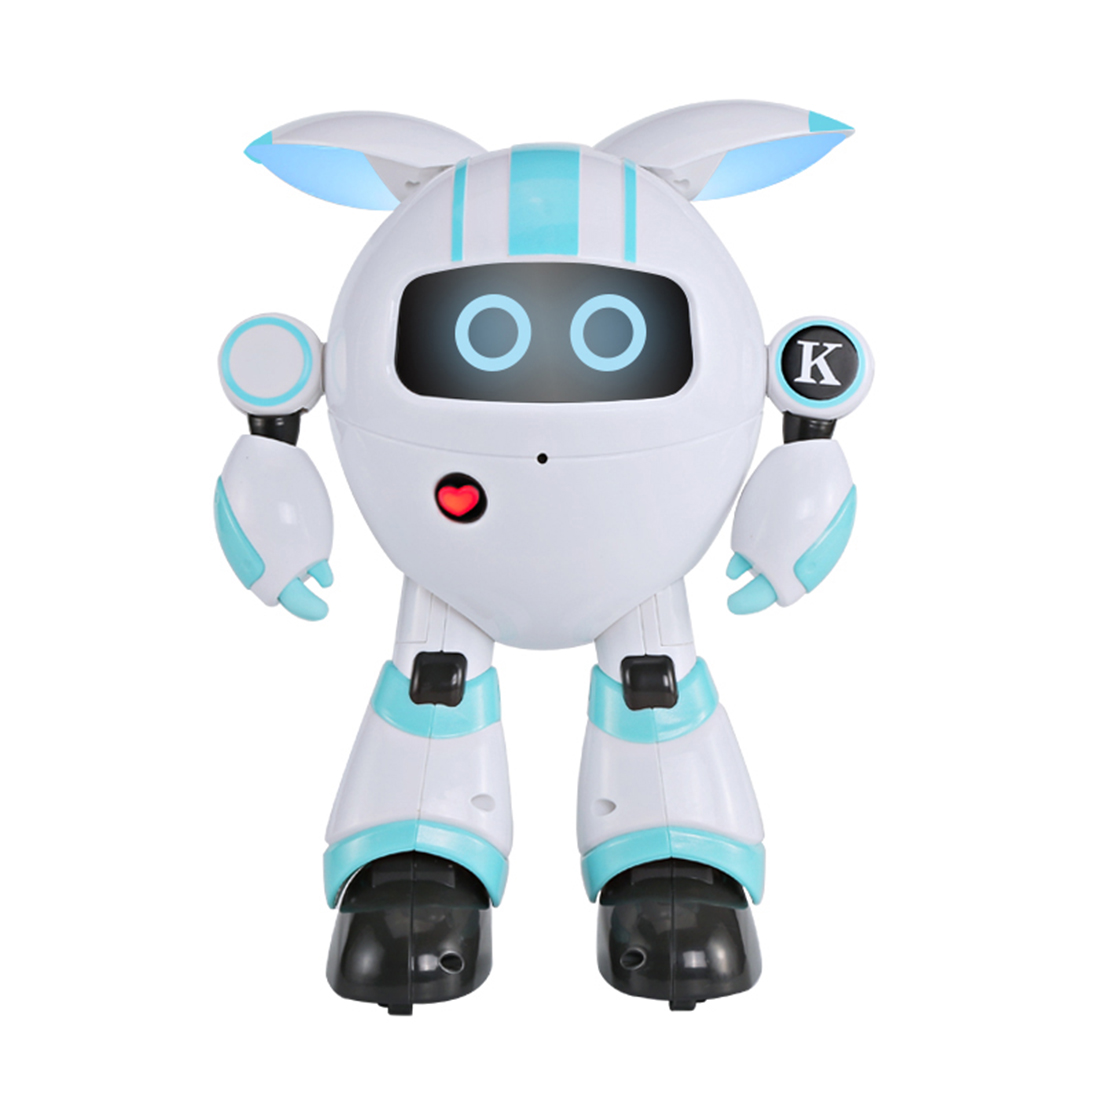 Modiker Smart Programmable Walking Robot RC Electronic Dancing Singing Story Telling Robot Toy for Children High Tech Toys Blue